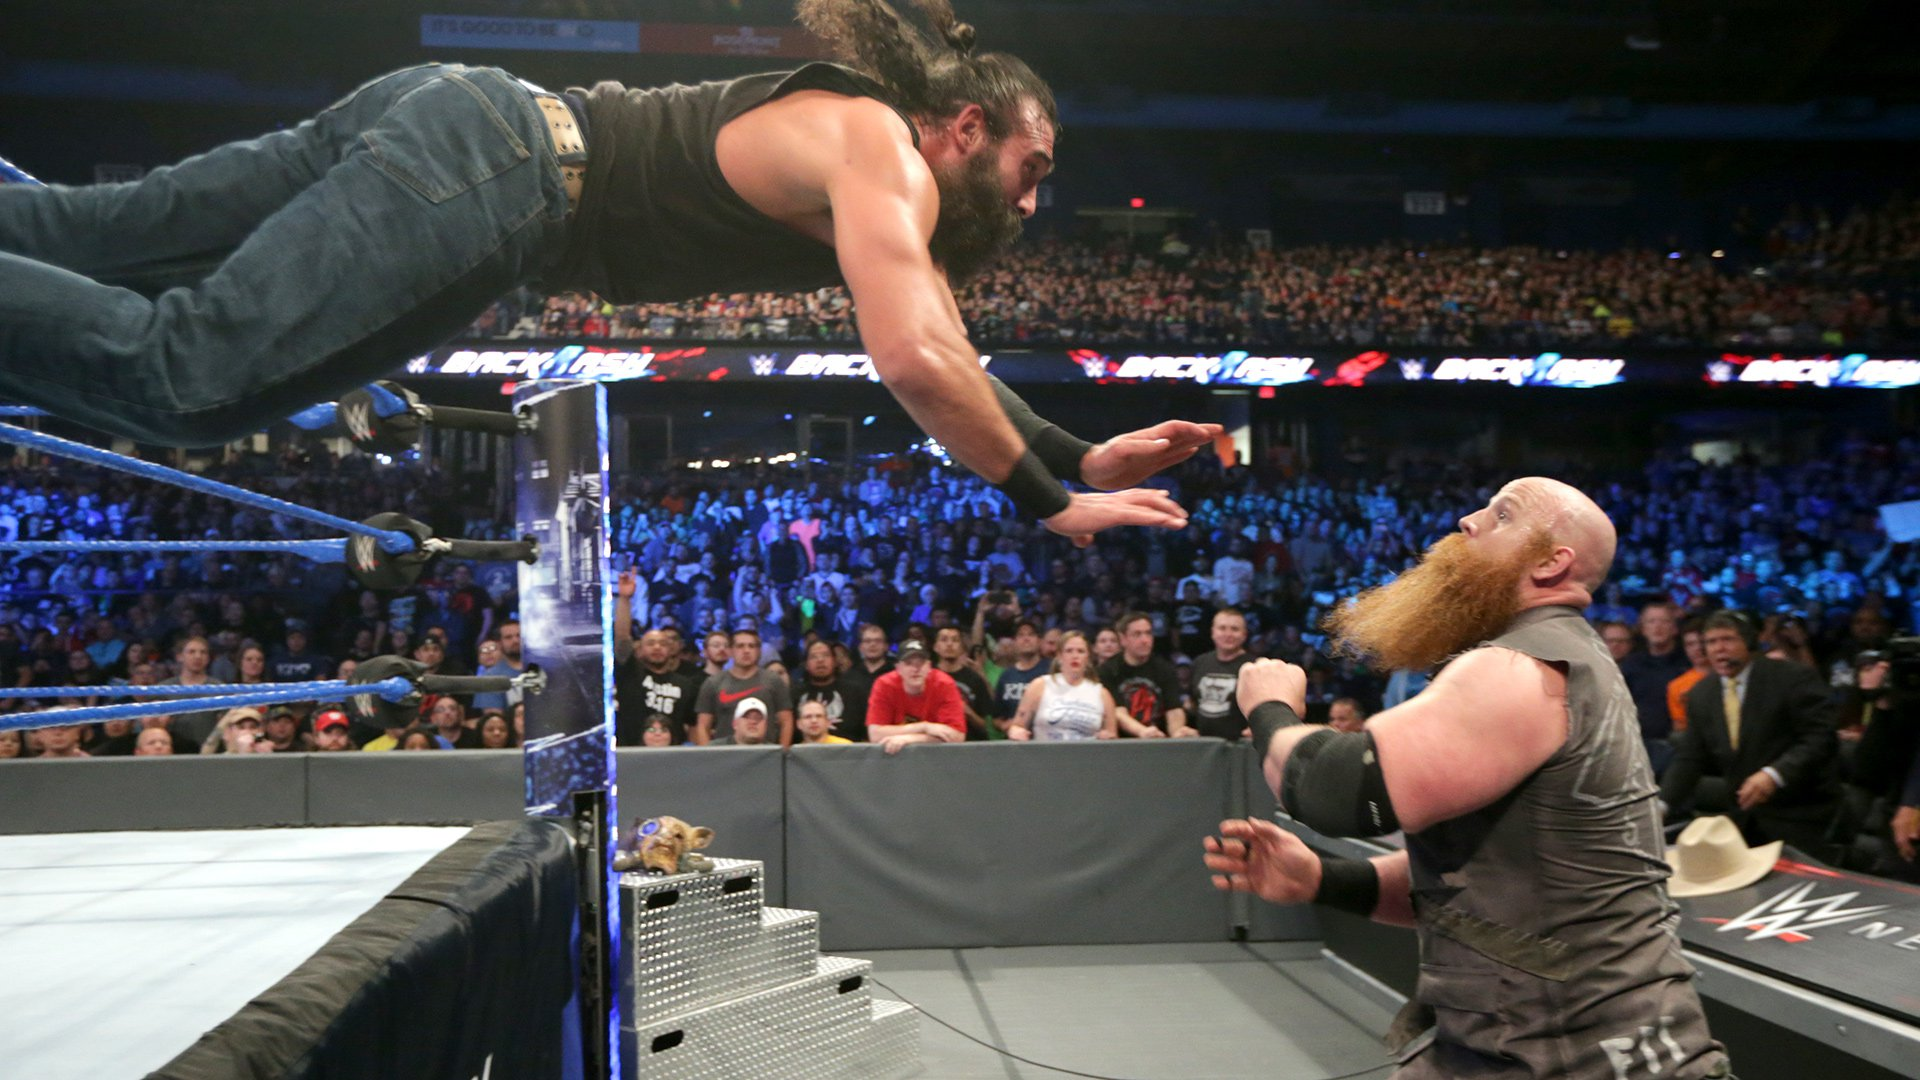 Luke Harper throws caution to the wind to take out his former ally.